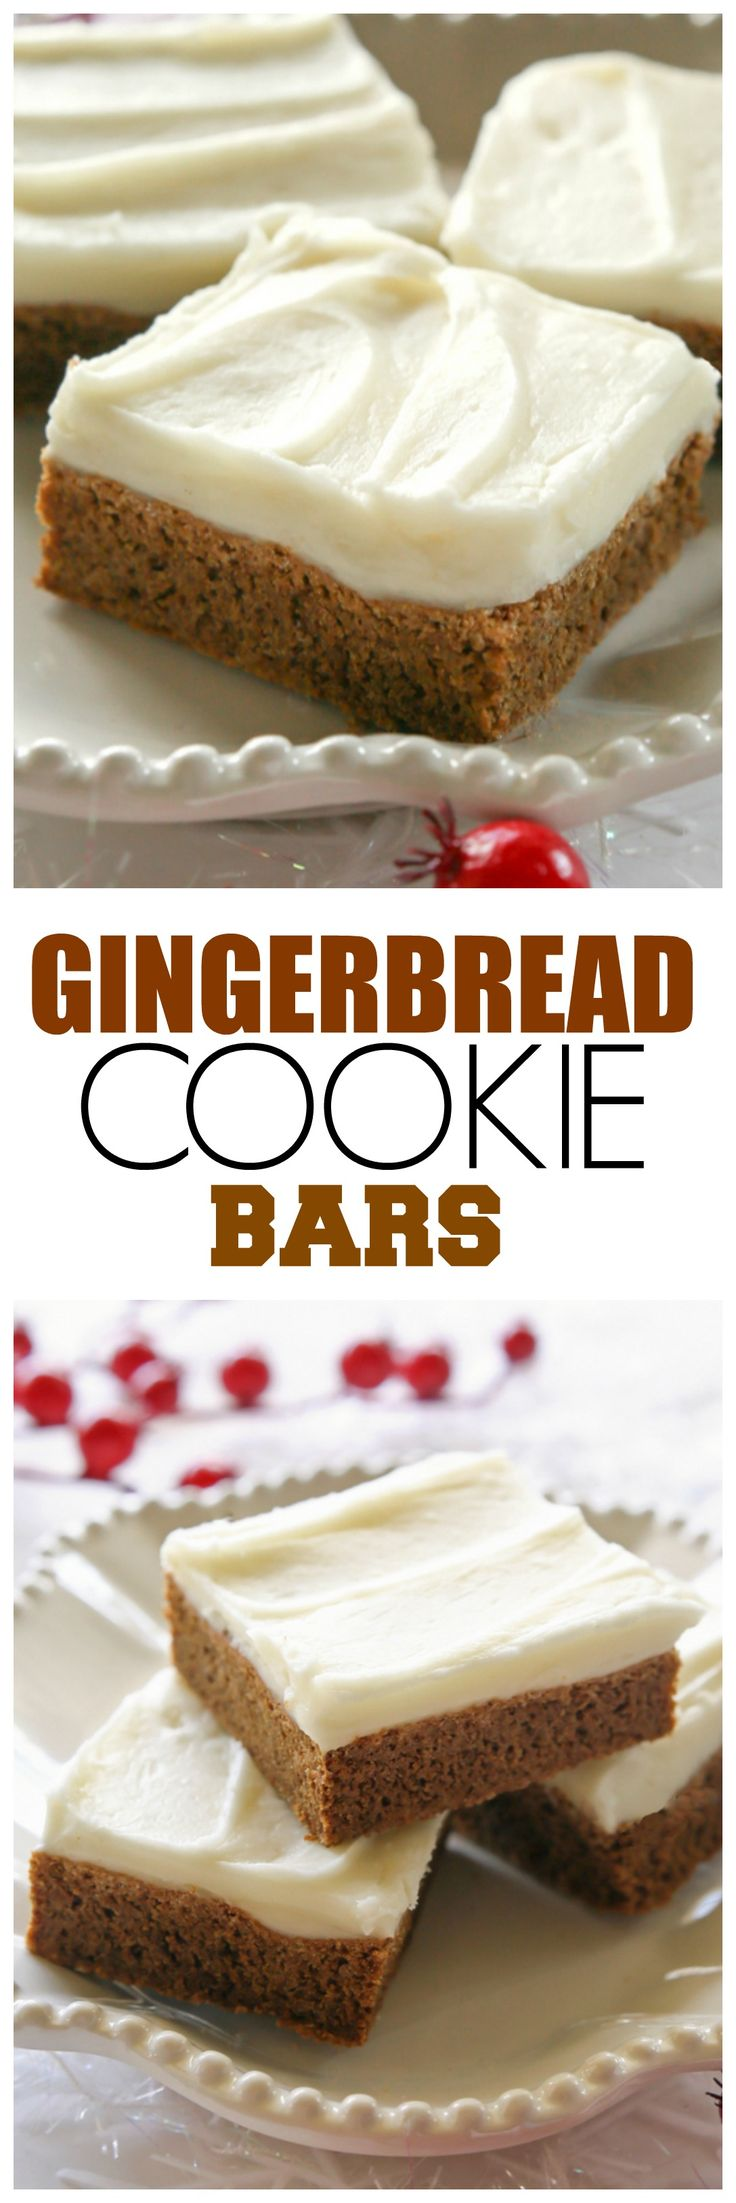 Pinner wrote: Gingerbread Cookie Bars - incredibly soft and chewy. Way easier than making gingerbread men. the-girl-who-ate-everything.com